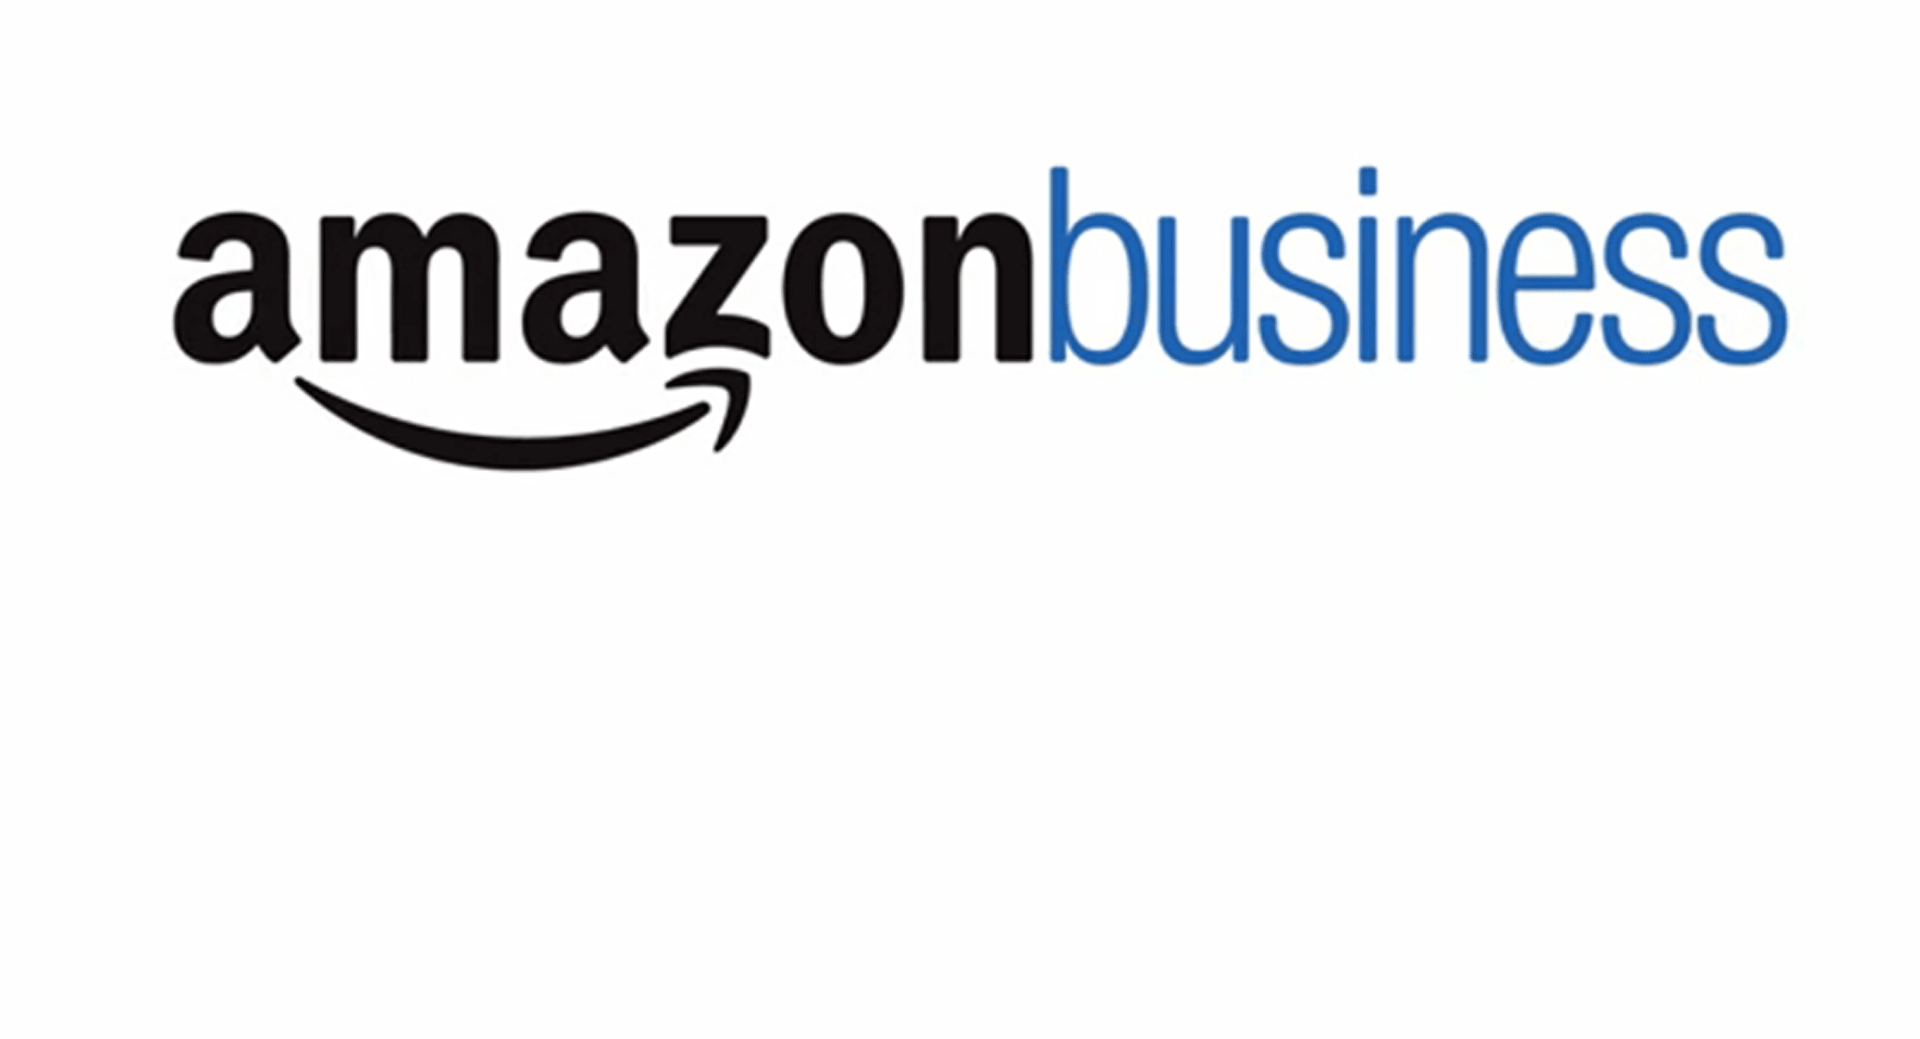 Guest Post: Skyward's Ecommerce Partnership with Amazon Business